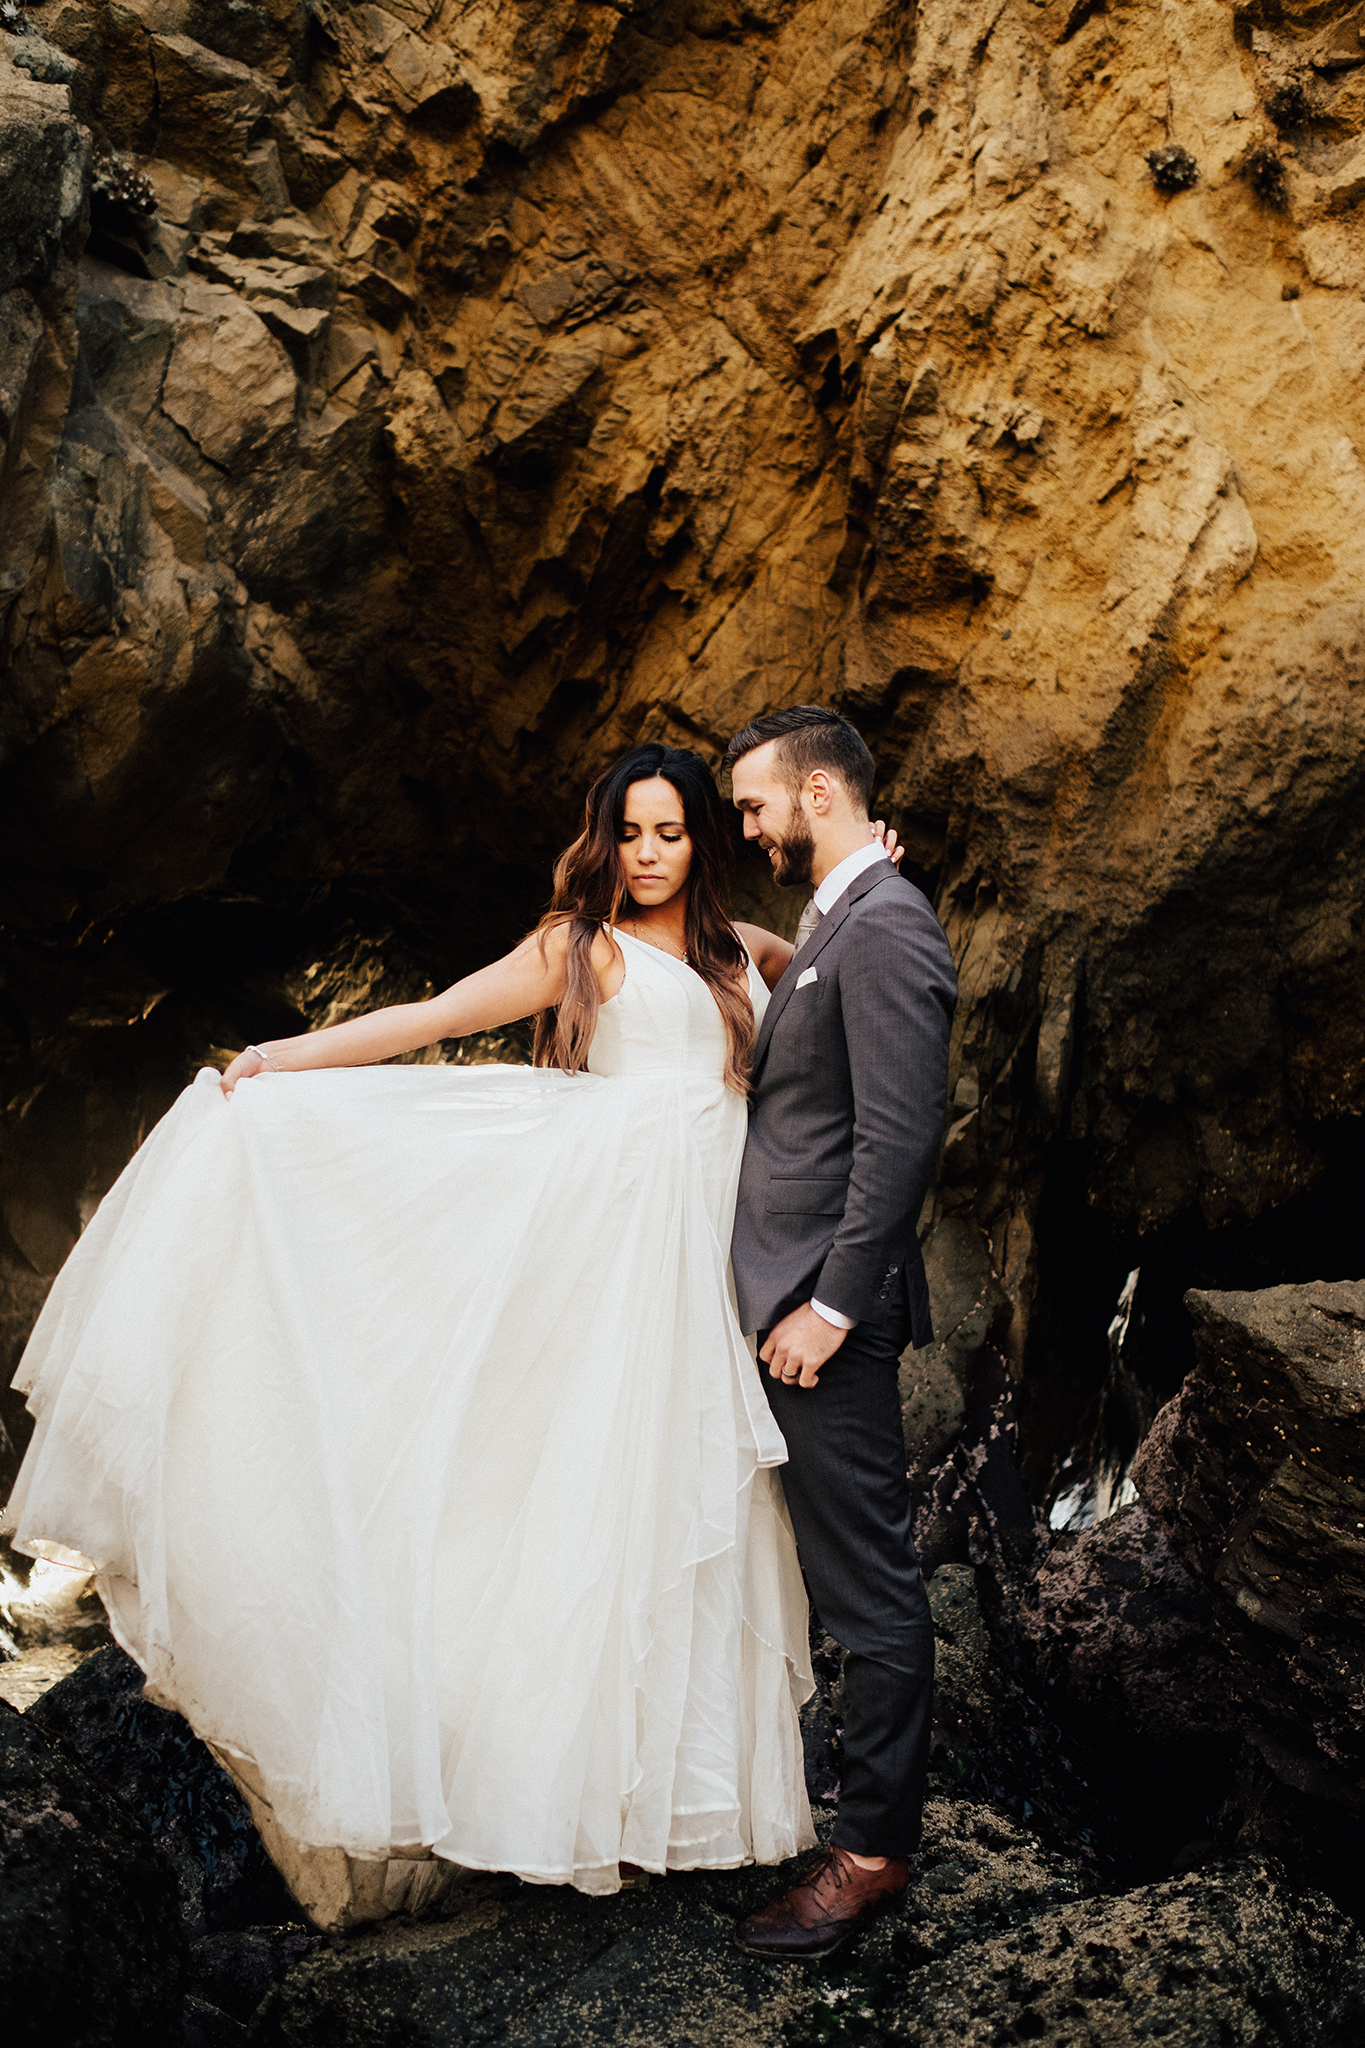 Big-Sur-National-Park-Elopement-Intimate-Wedding-Photographer (64).jpg